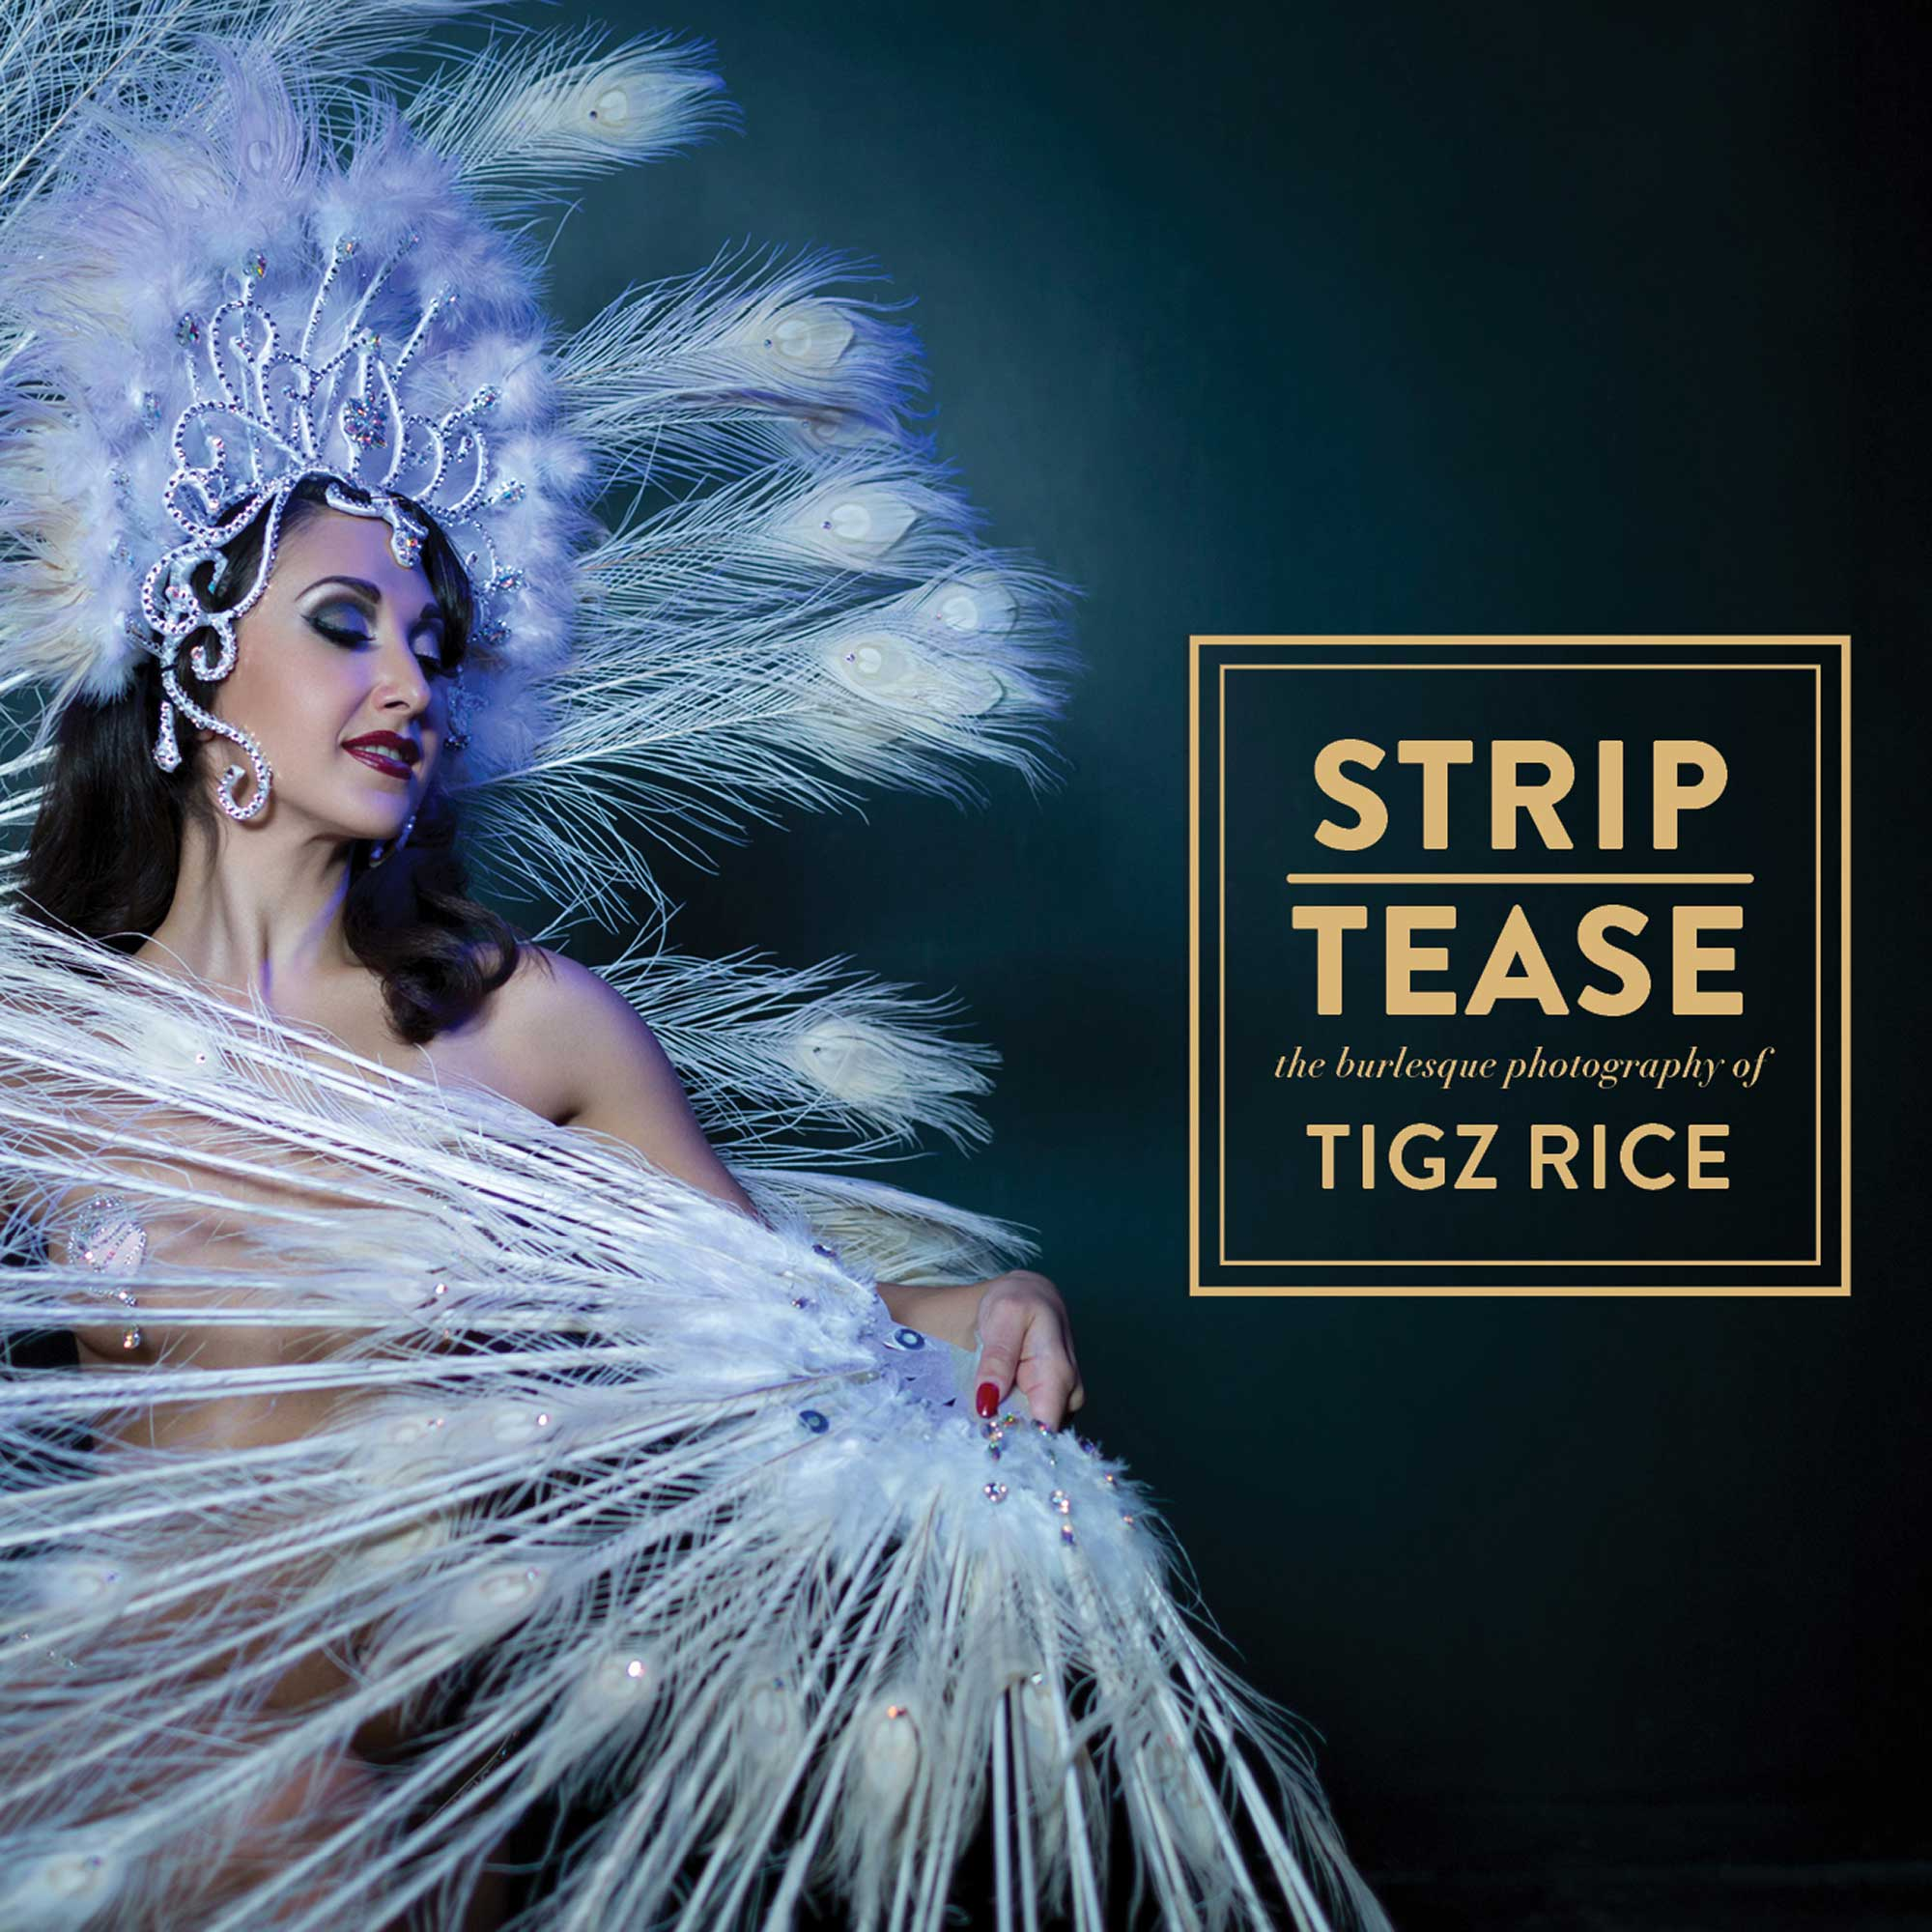 STRIP|TEASE review - an award winning coffee table burlesque book by Tigz Rice